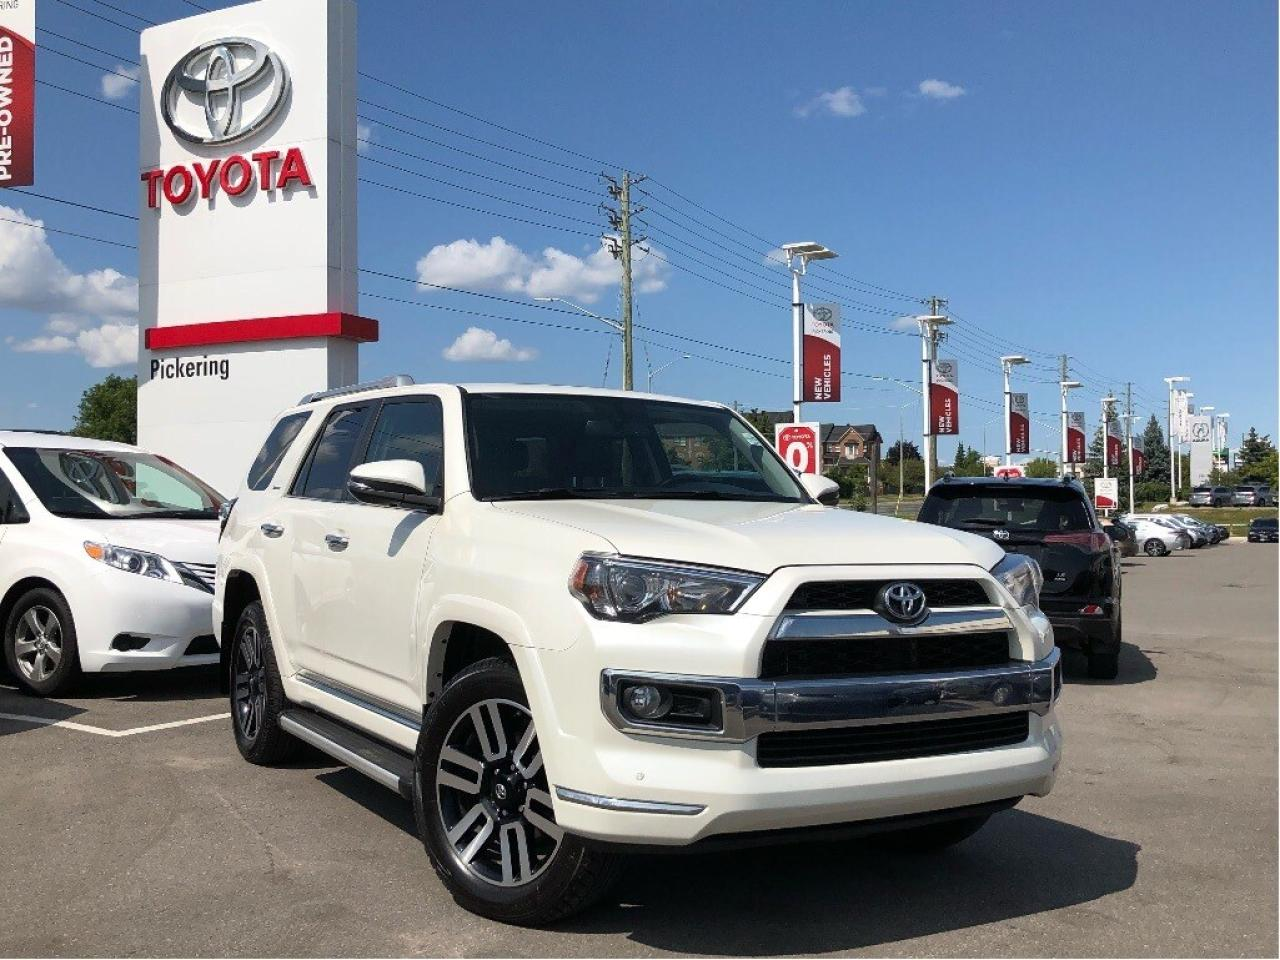 New Vehicles 2017 >> Used Toyota 4runner On Sale Pickering Toyota